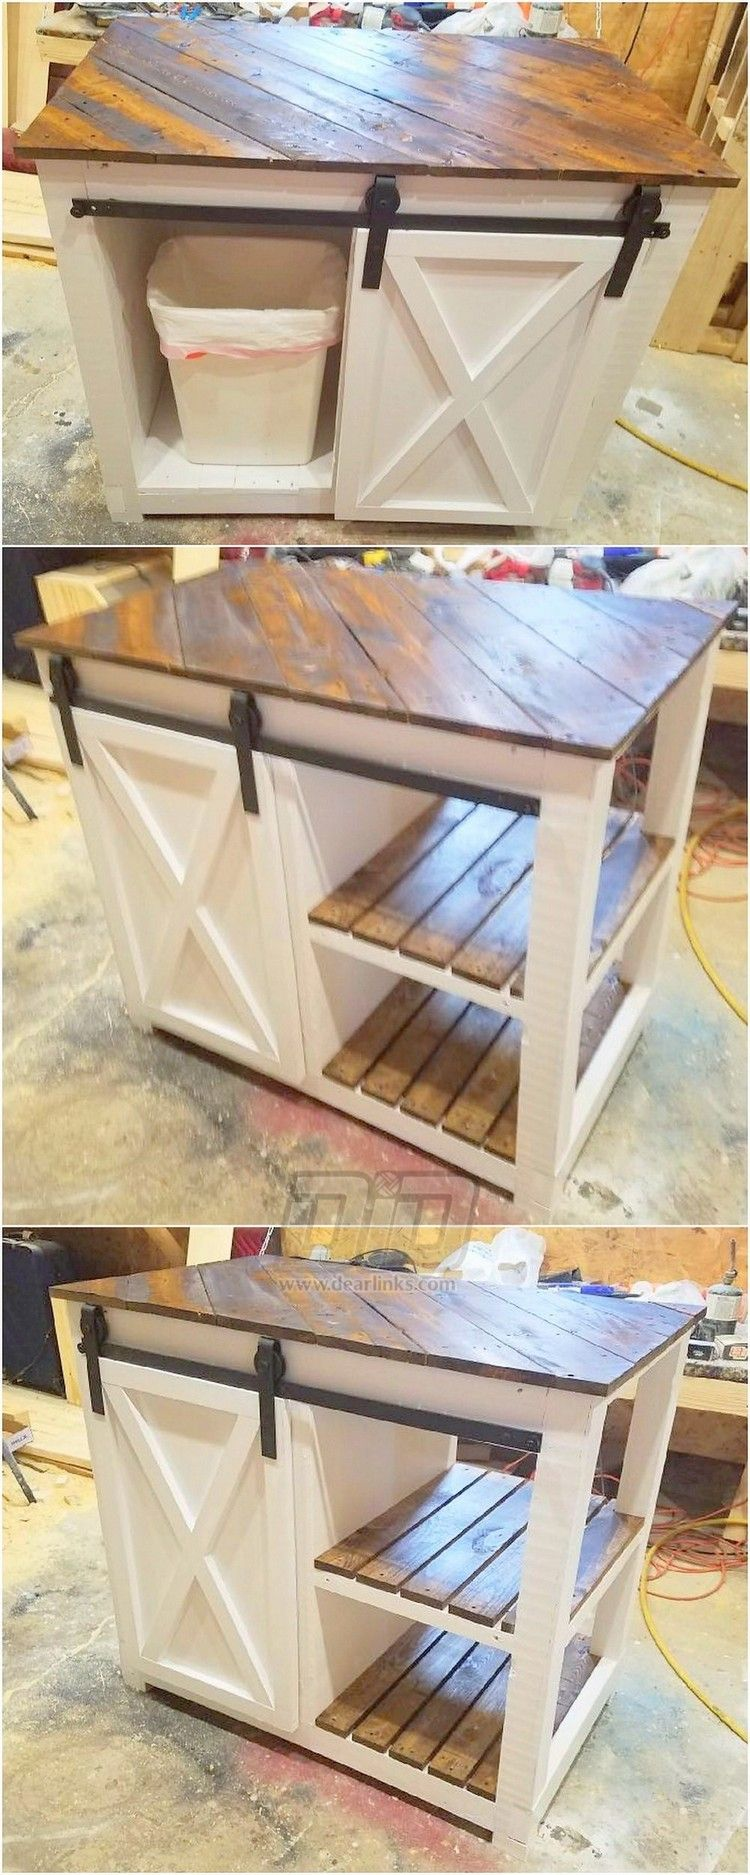 Supreme Allure Pallet Wood Repurpose Ideas #diyfurniture